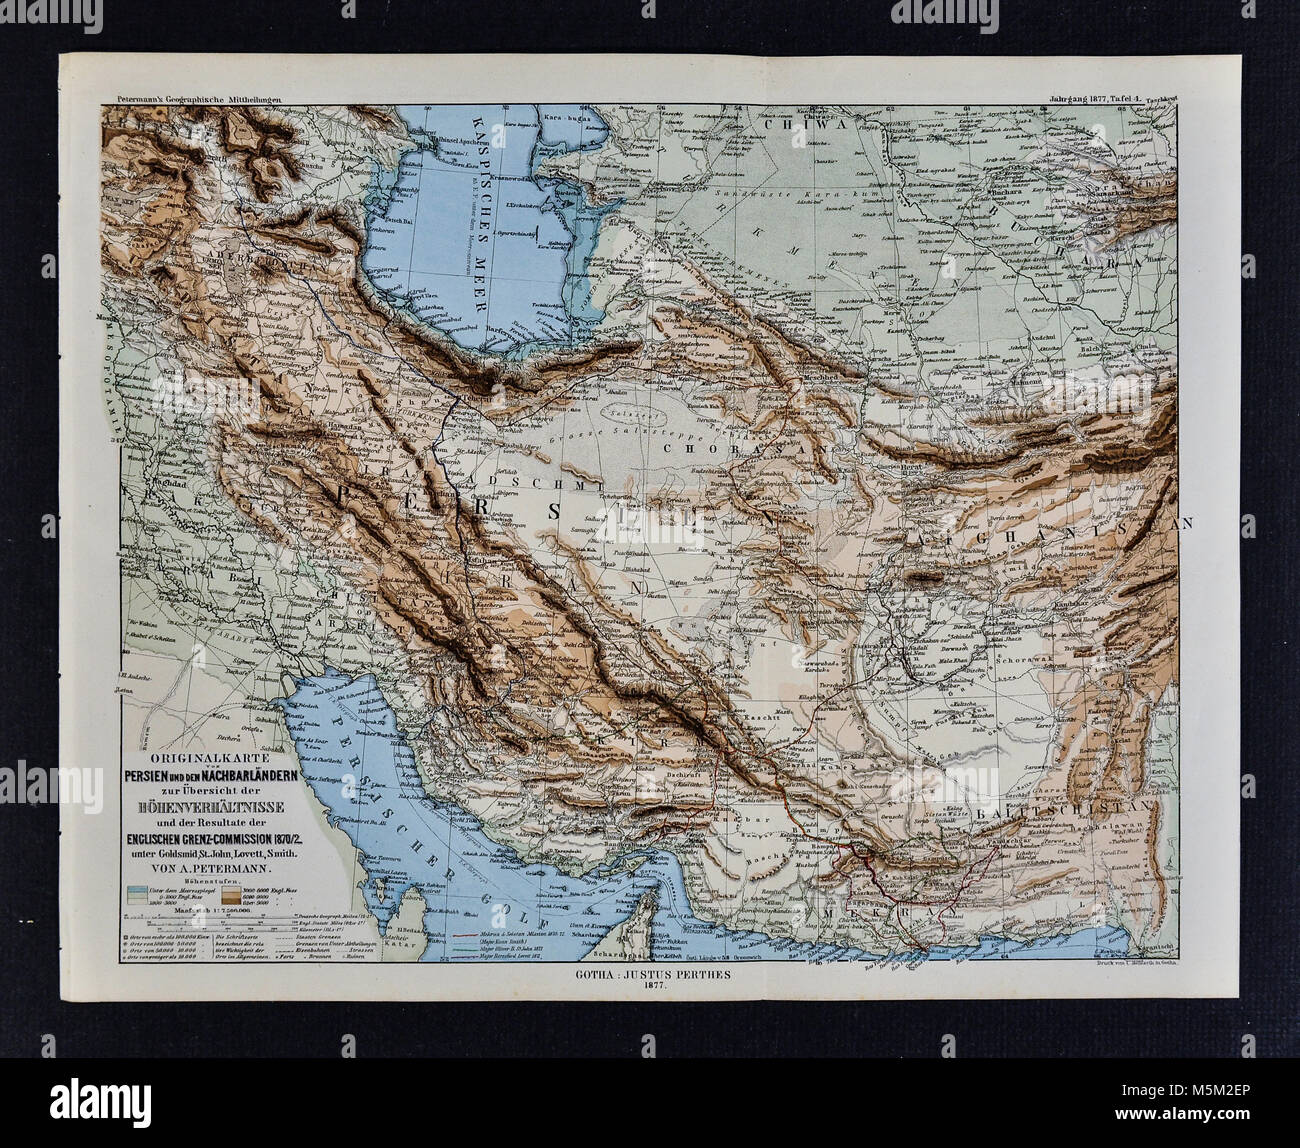 1877 petermann mittheilungen map middle east persia iran iraq 1877 petermann mittheilungen map middle east persia iran iraq afghanistan asia gumiabroncs Image collections